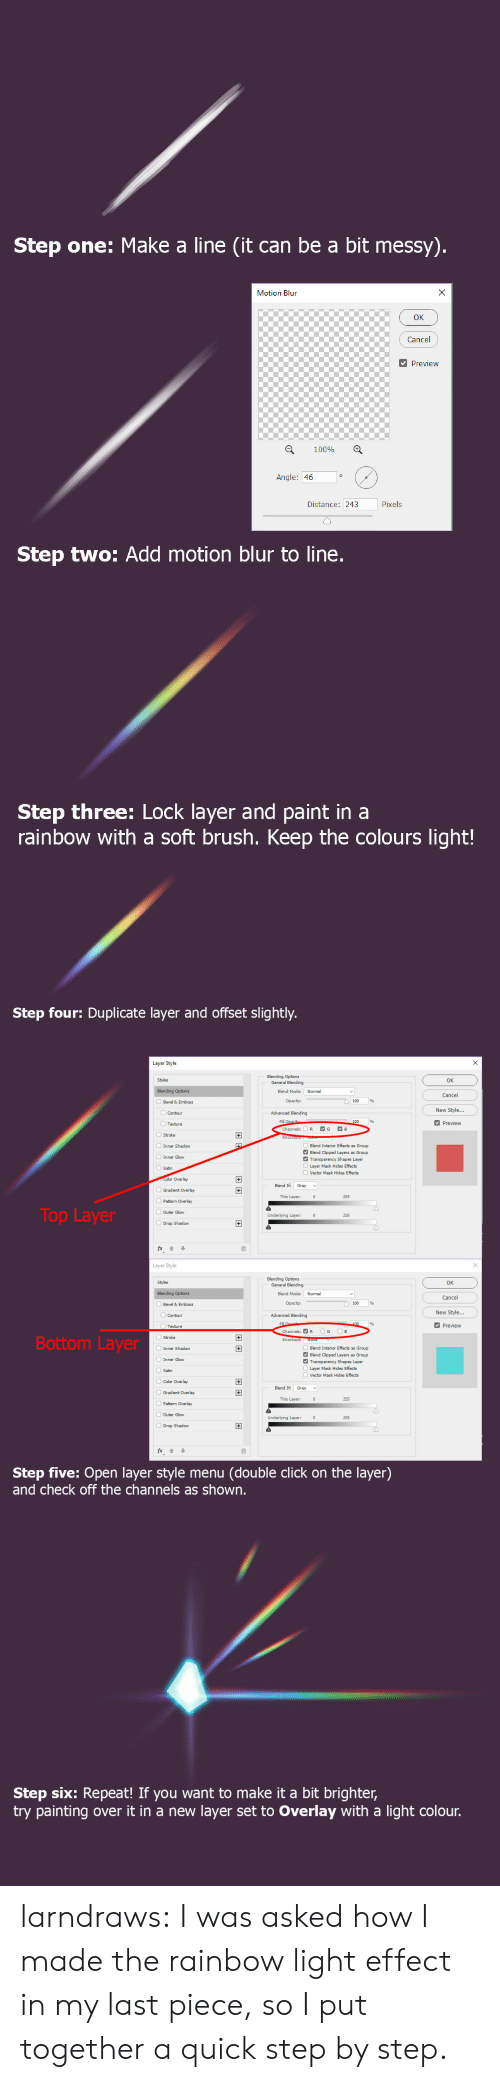 offset: Step one: Make a line (it can be a bit messy).  X  Motion Blun  Cancel  Preview  100%  Angle: 46  Pixels  Distance: 243  Step two: Add motion blur to line.  Step three: Lock layer and paint in a  rainbow with a soft brush. Keep the colours light!   Step four: Duplicate layer and offset slightly.  Layer Style  Blending Options  General Blending  Styles  OK  Blending Options  Blend Mode:  Normal  Cancel  Opacity:  Bevel & Emboss  New Style...  Advanced Blending  Contour  Fill Opacib  Channels:  Preview  Texture  G  B  R  +  Stroke  Inner Shadow  Blend Interior Effects  Blend Clipped Layers  Transparency Shapes Layer  s Group  Group  Inner Glow  Layer Mask Hides Effects  Satin  Vector Mask Hides Effects  Color Overlay  +  Blend If  Gray  Gradient Overlay  This Layer:  255  Pattern Overlay  Top Layer  OOuter Glow  Underlying Layer:  255  Drop Shadow  Layer Style  Blending Options  General Blending  Styles  OK  Normal  Blending Options  Blend Mode:  Cancel  Opacity:  Bevel & Emboss  New Style...  Advanced Blending  Contour  Fill  100  Preview  Texture  G  B  Channels: R  Bottom Layer  Knockout: None  Inner Shadow  Blend Interior Effects  Blend Clipped Layers  Transparency Shapes Layer  Layer Mask Hides Effects  +  s Group  Group  Inner Glow  Satin  Vector Mask Hides Effects  Color Overlay  +  Blend If  Gradient Overlay  +  This Layer:  255  Pattern Overlay  Outer Glow  Underlying Layer:  255  Drop Shadow  fx  Step five: Open layer style menu  and check off the channels as shown.  (double click on the layer)   Step six: Repeat! If you want to make it a bit brighter,  try painting  layer set to Overlay with a light colour.  over it in a new larndraws:  I was asked how I made the rainbow light effect in my last piece, so I put together a quick step by step.